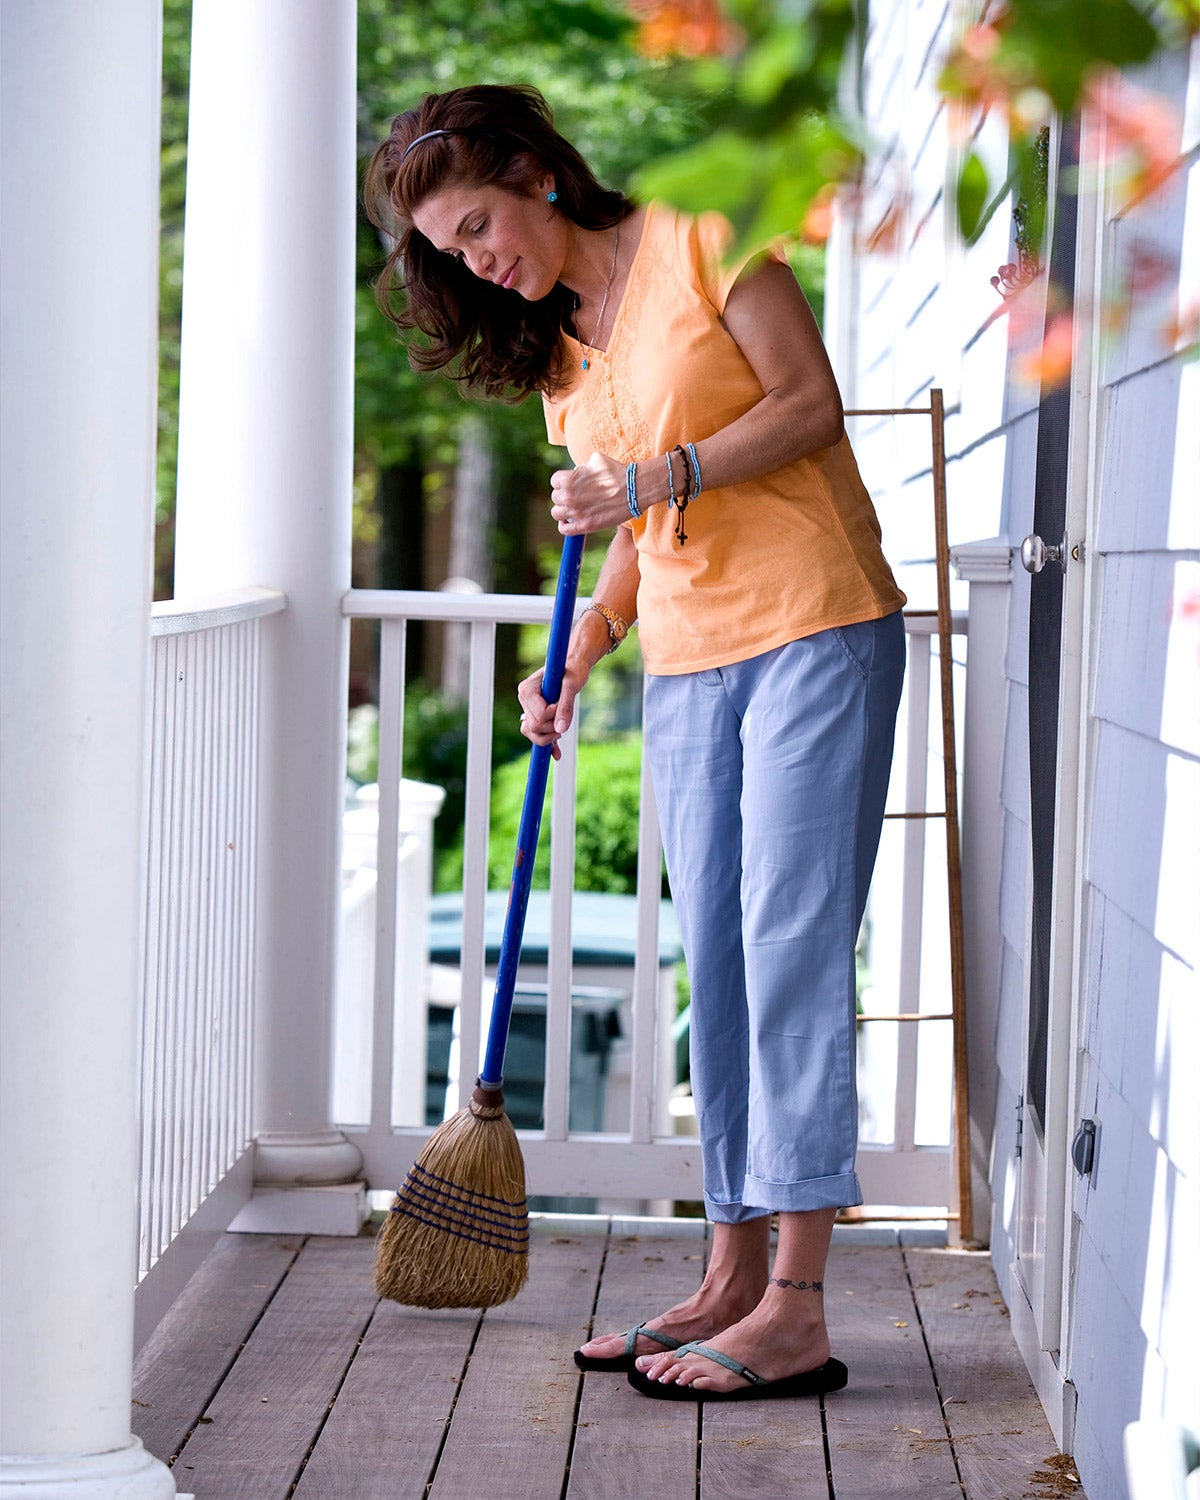 woman sweeping porch